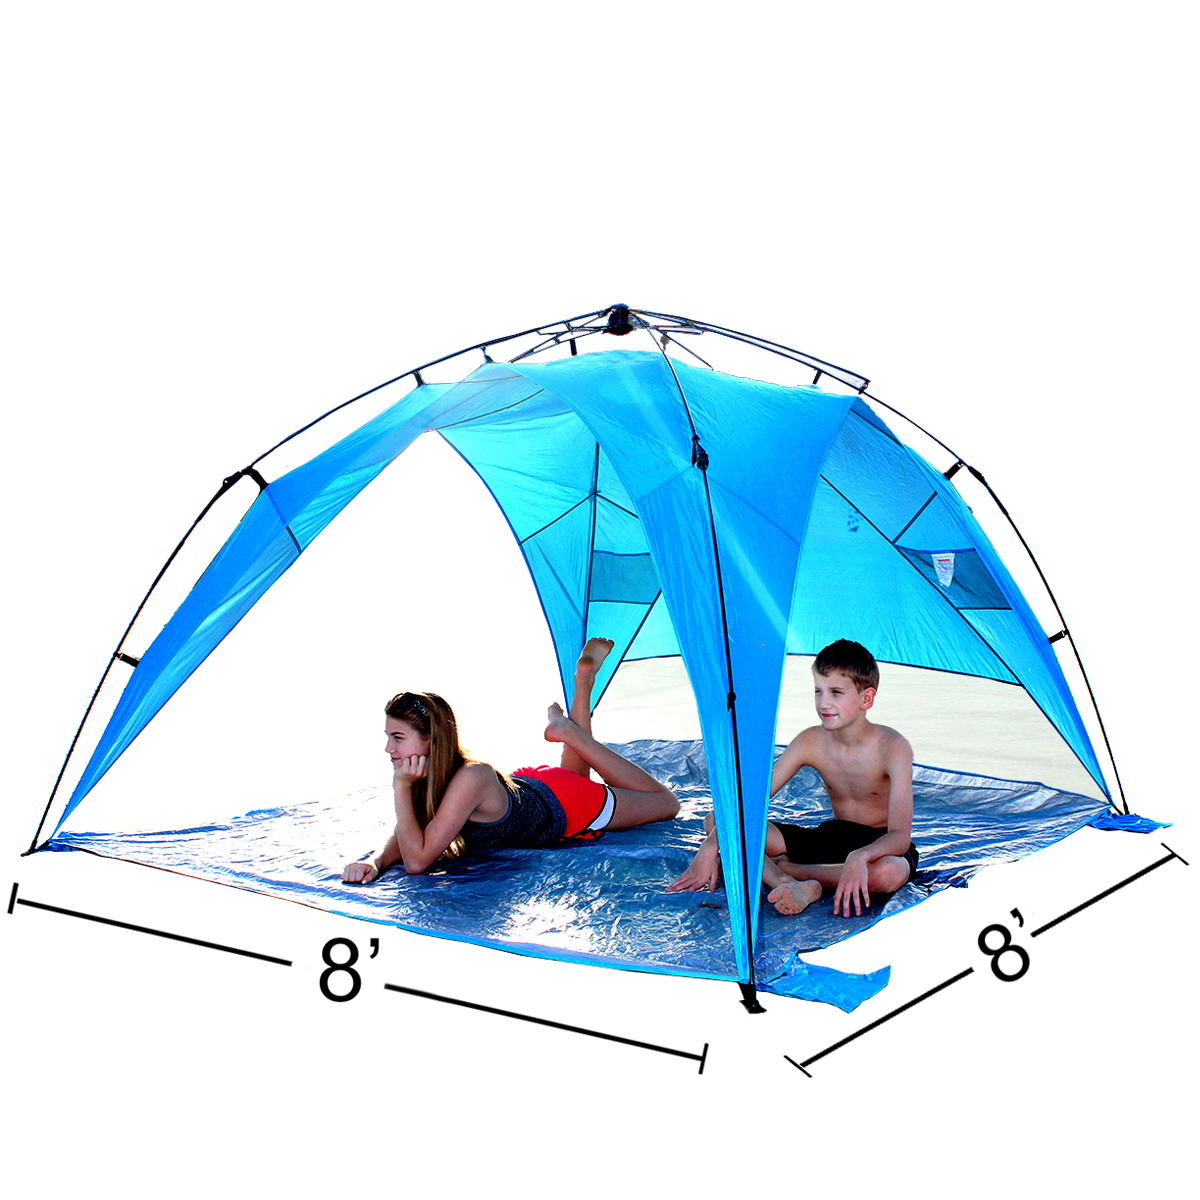 8 Foot Shelter XL - Instant Beach Umbrella Tent Pop Up with PVC Floor - 8' X 8'